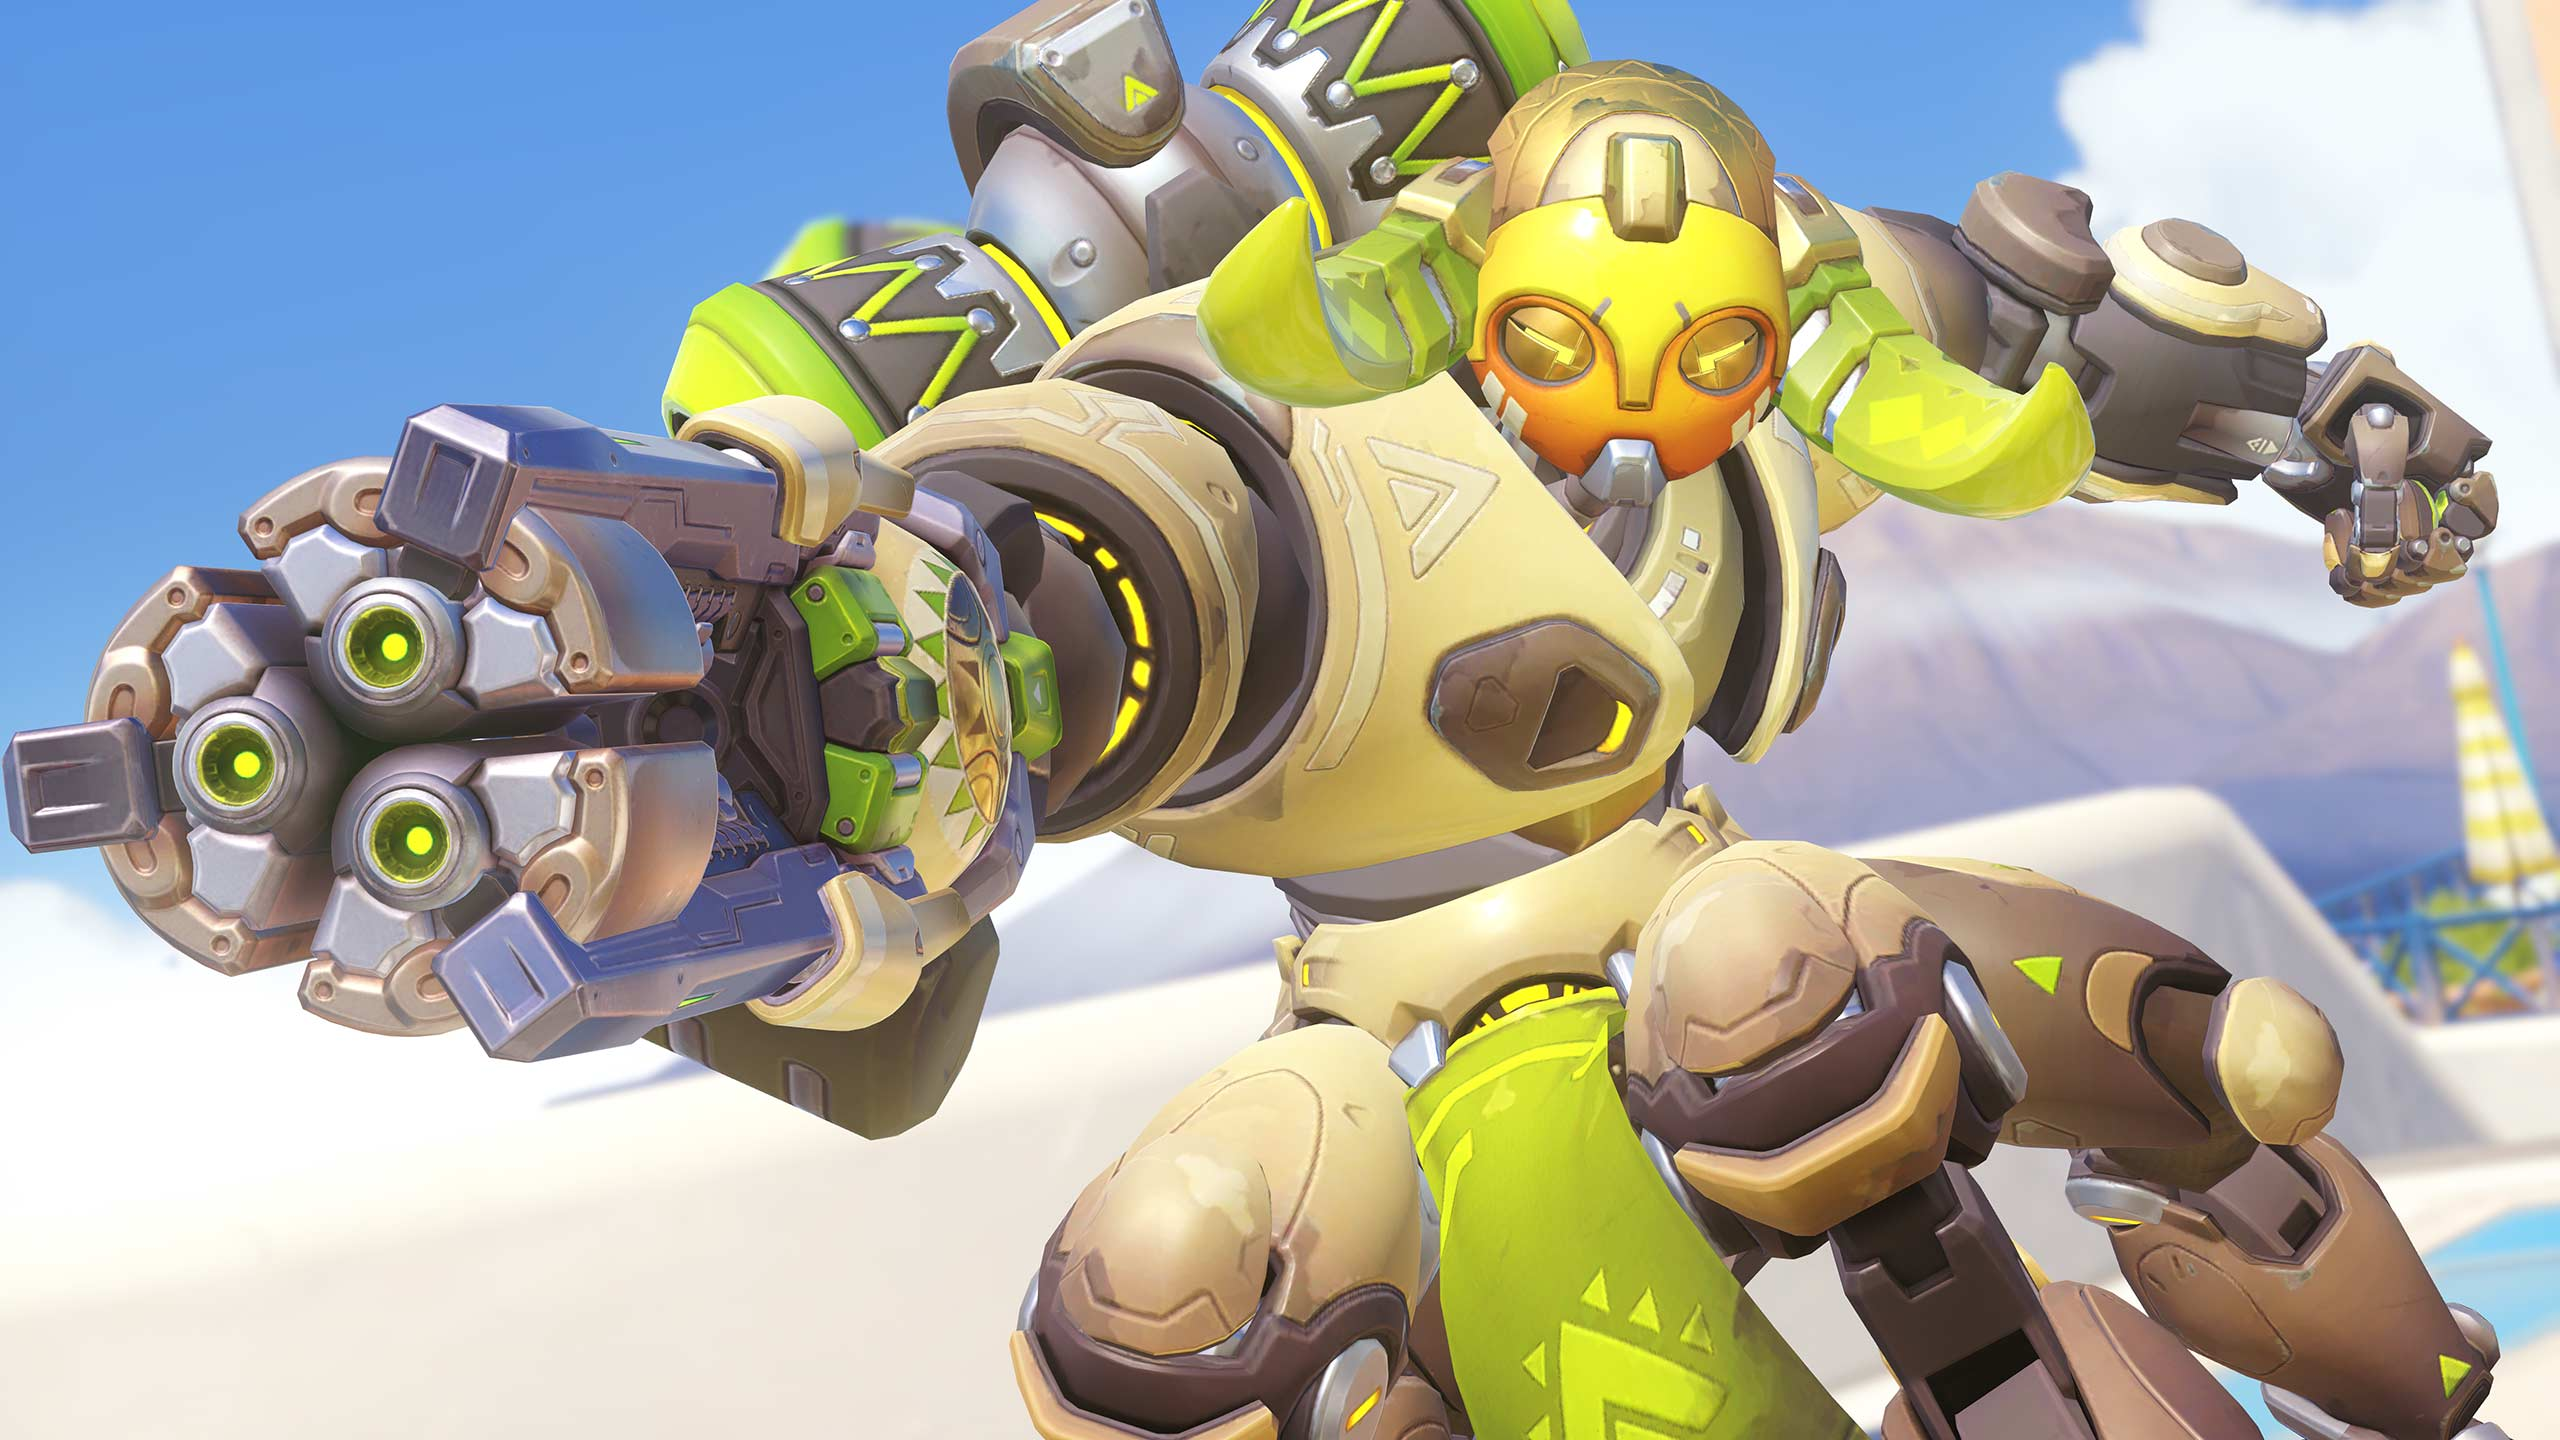 orisa-screenshot-004.jpg